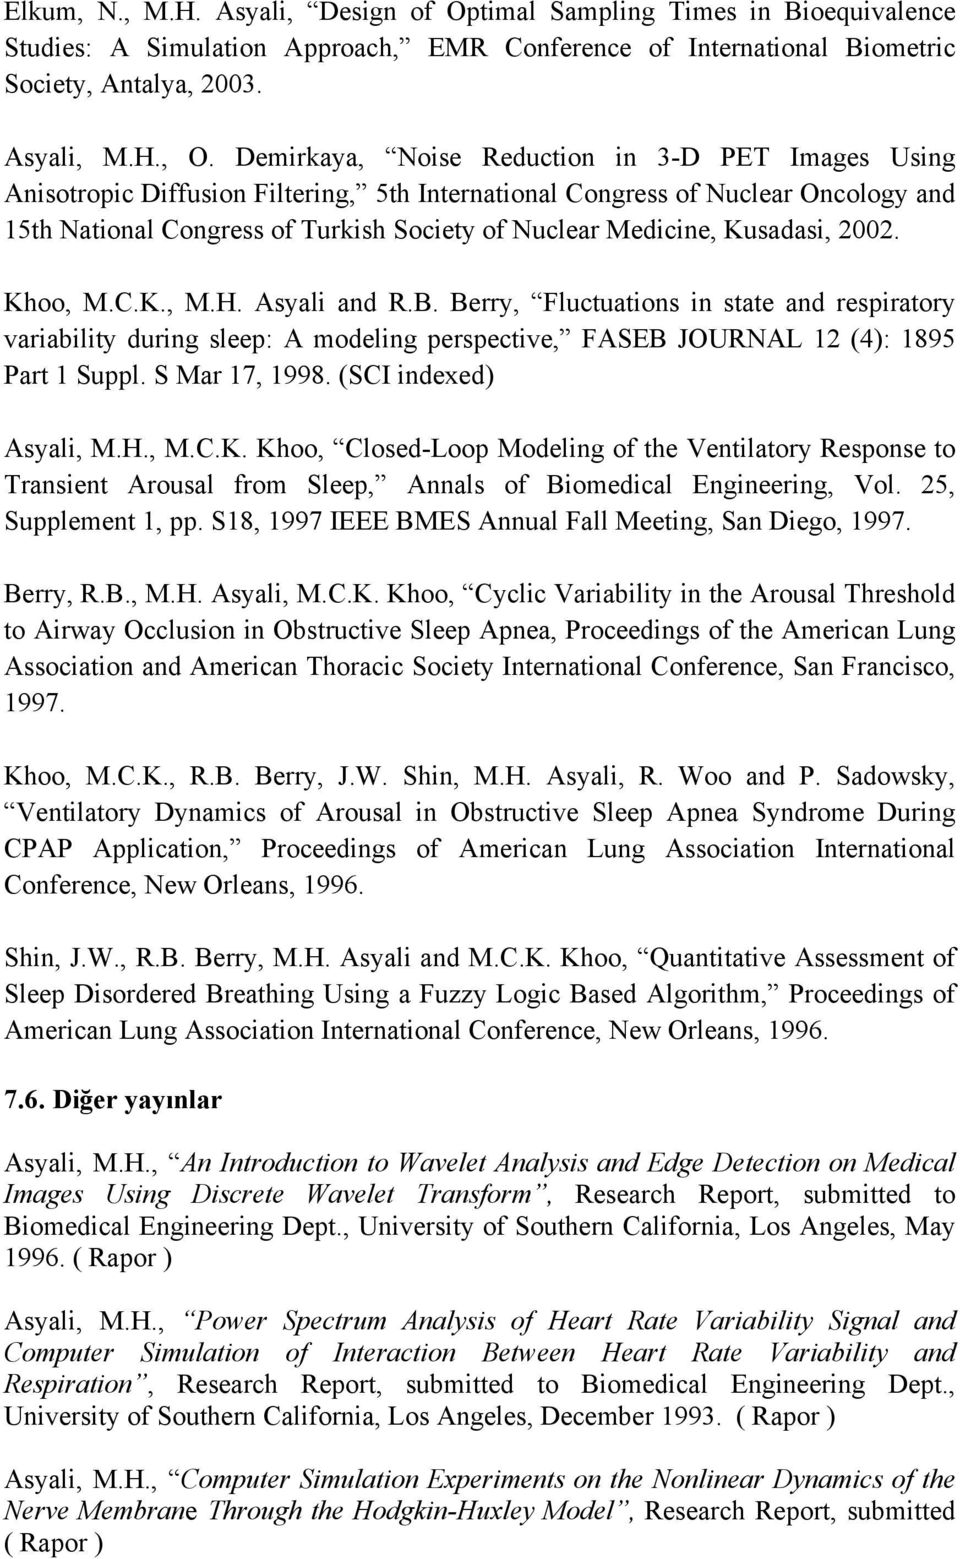 Kusadasi, 2002. Khoo, M.C.K., M.H. Asyali and R.B. Berry, Fluctuations in state and respiratory variability during sleep: A modeling perspective, FASEB JOURNAL 12 (4): 1895 Part 1 Suppl.